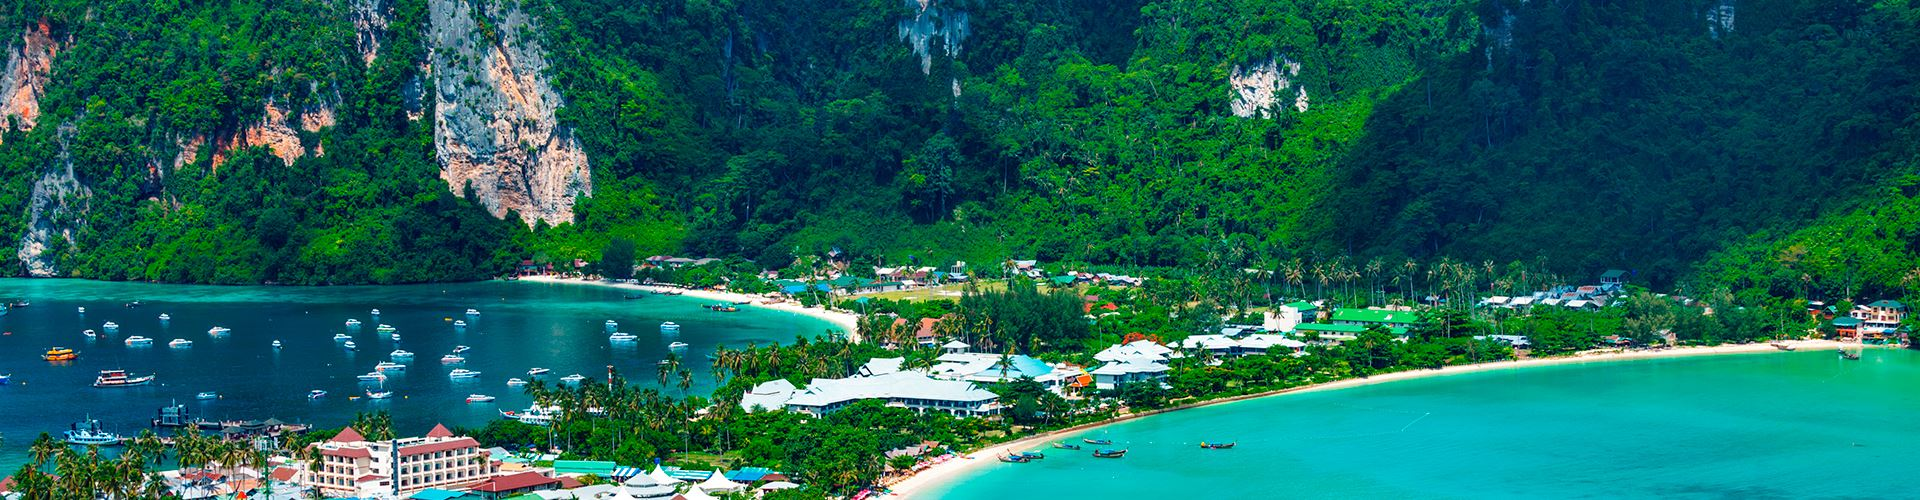 Travel-vacation-background---Tropical-island-with-resorts---Phi-Phi-island1.jpg